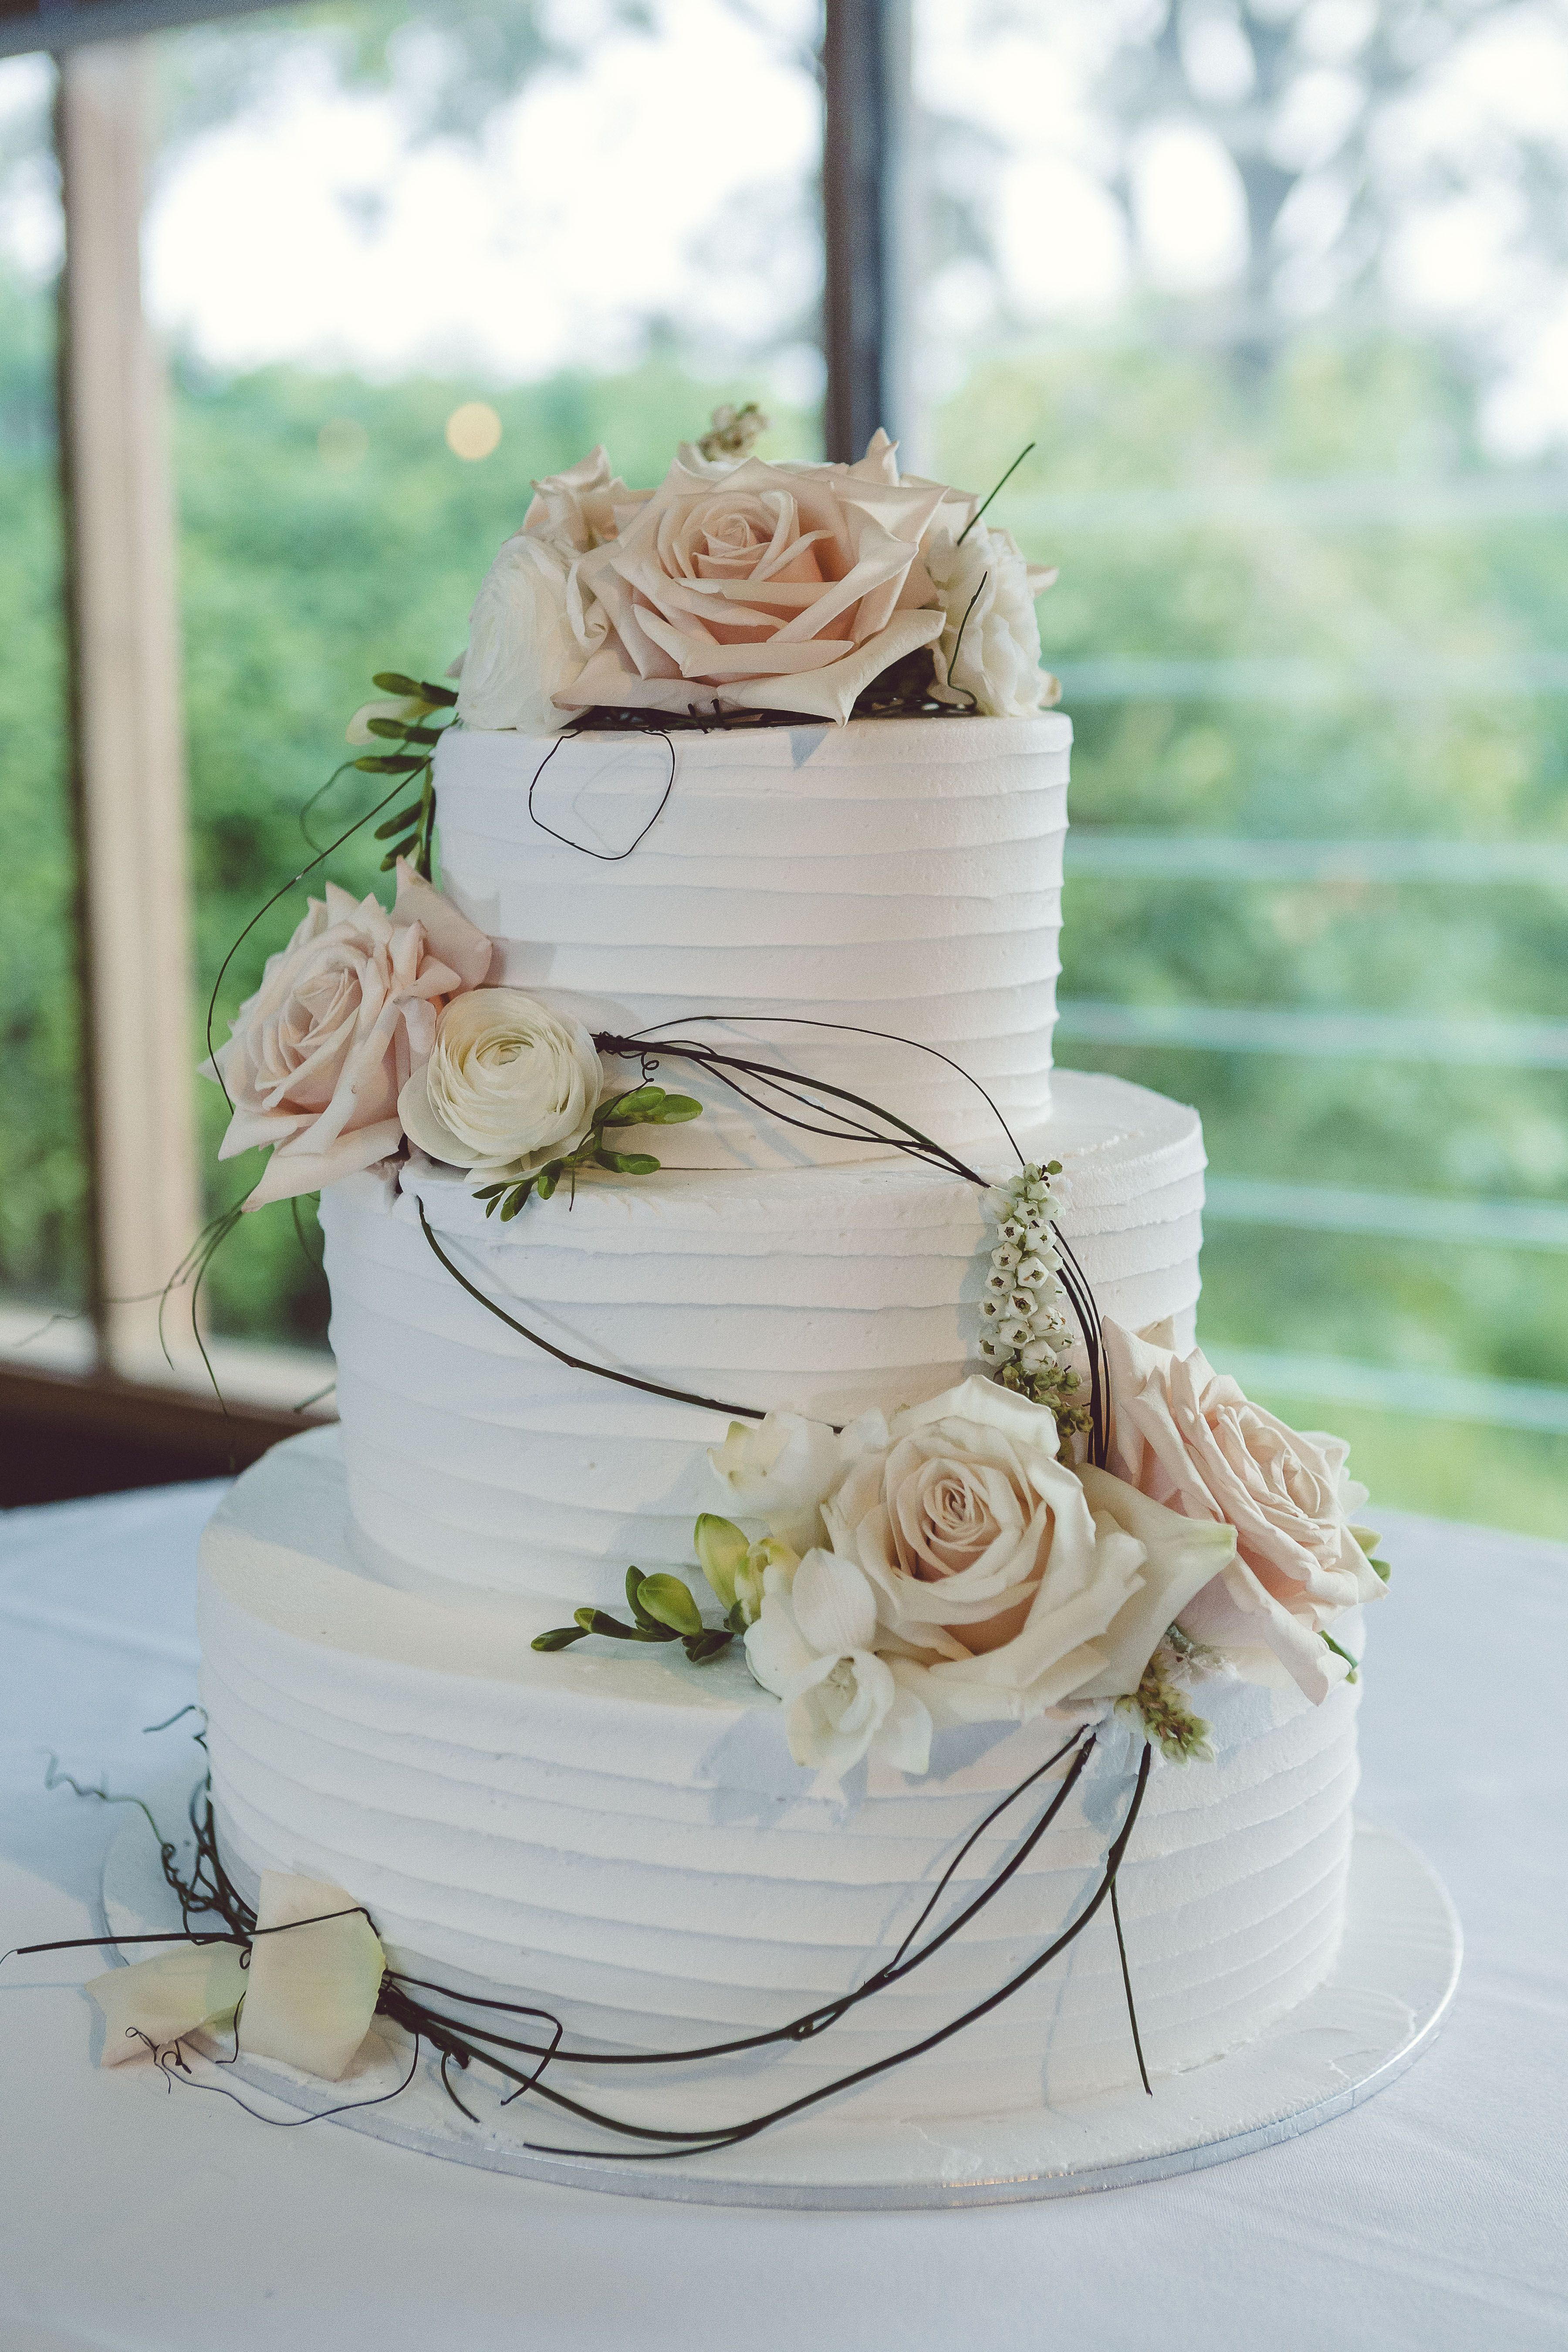 wedding cake tier white icing peach and flowers vine wallpaper diy for tower dessert bar mobile phones hd pics